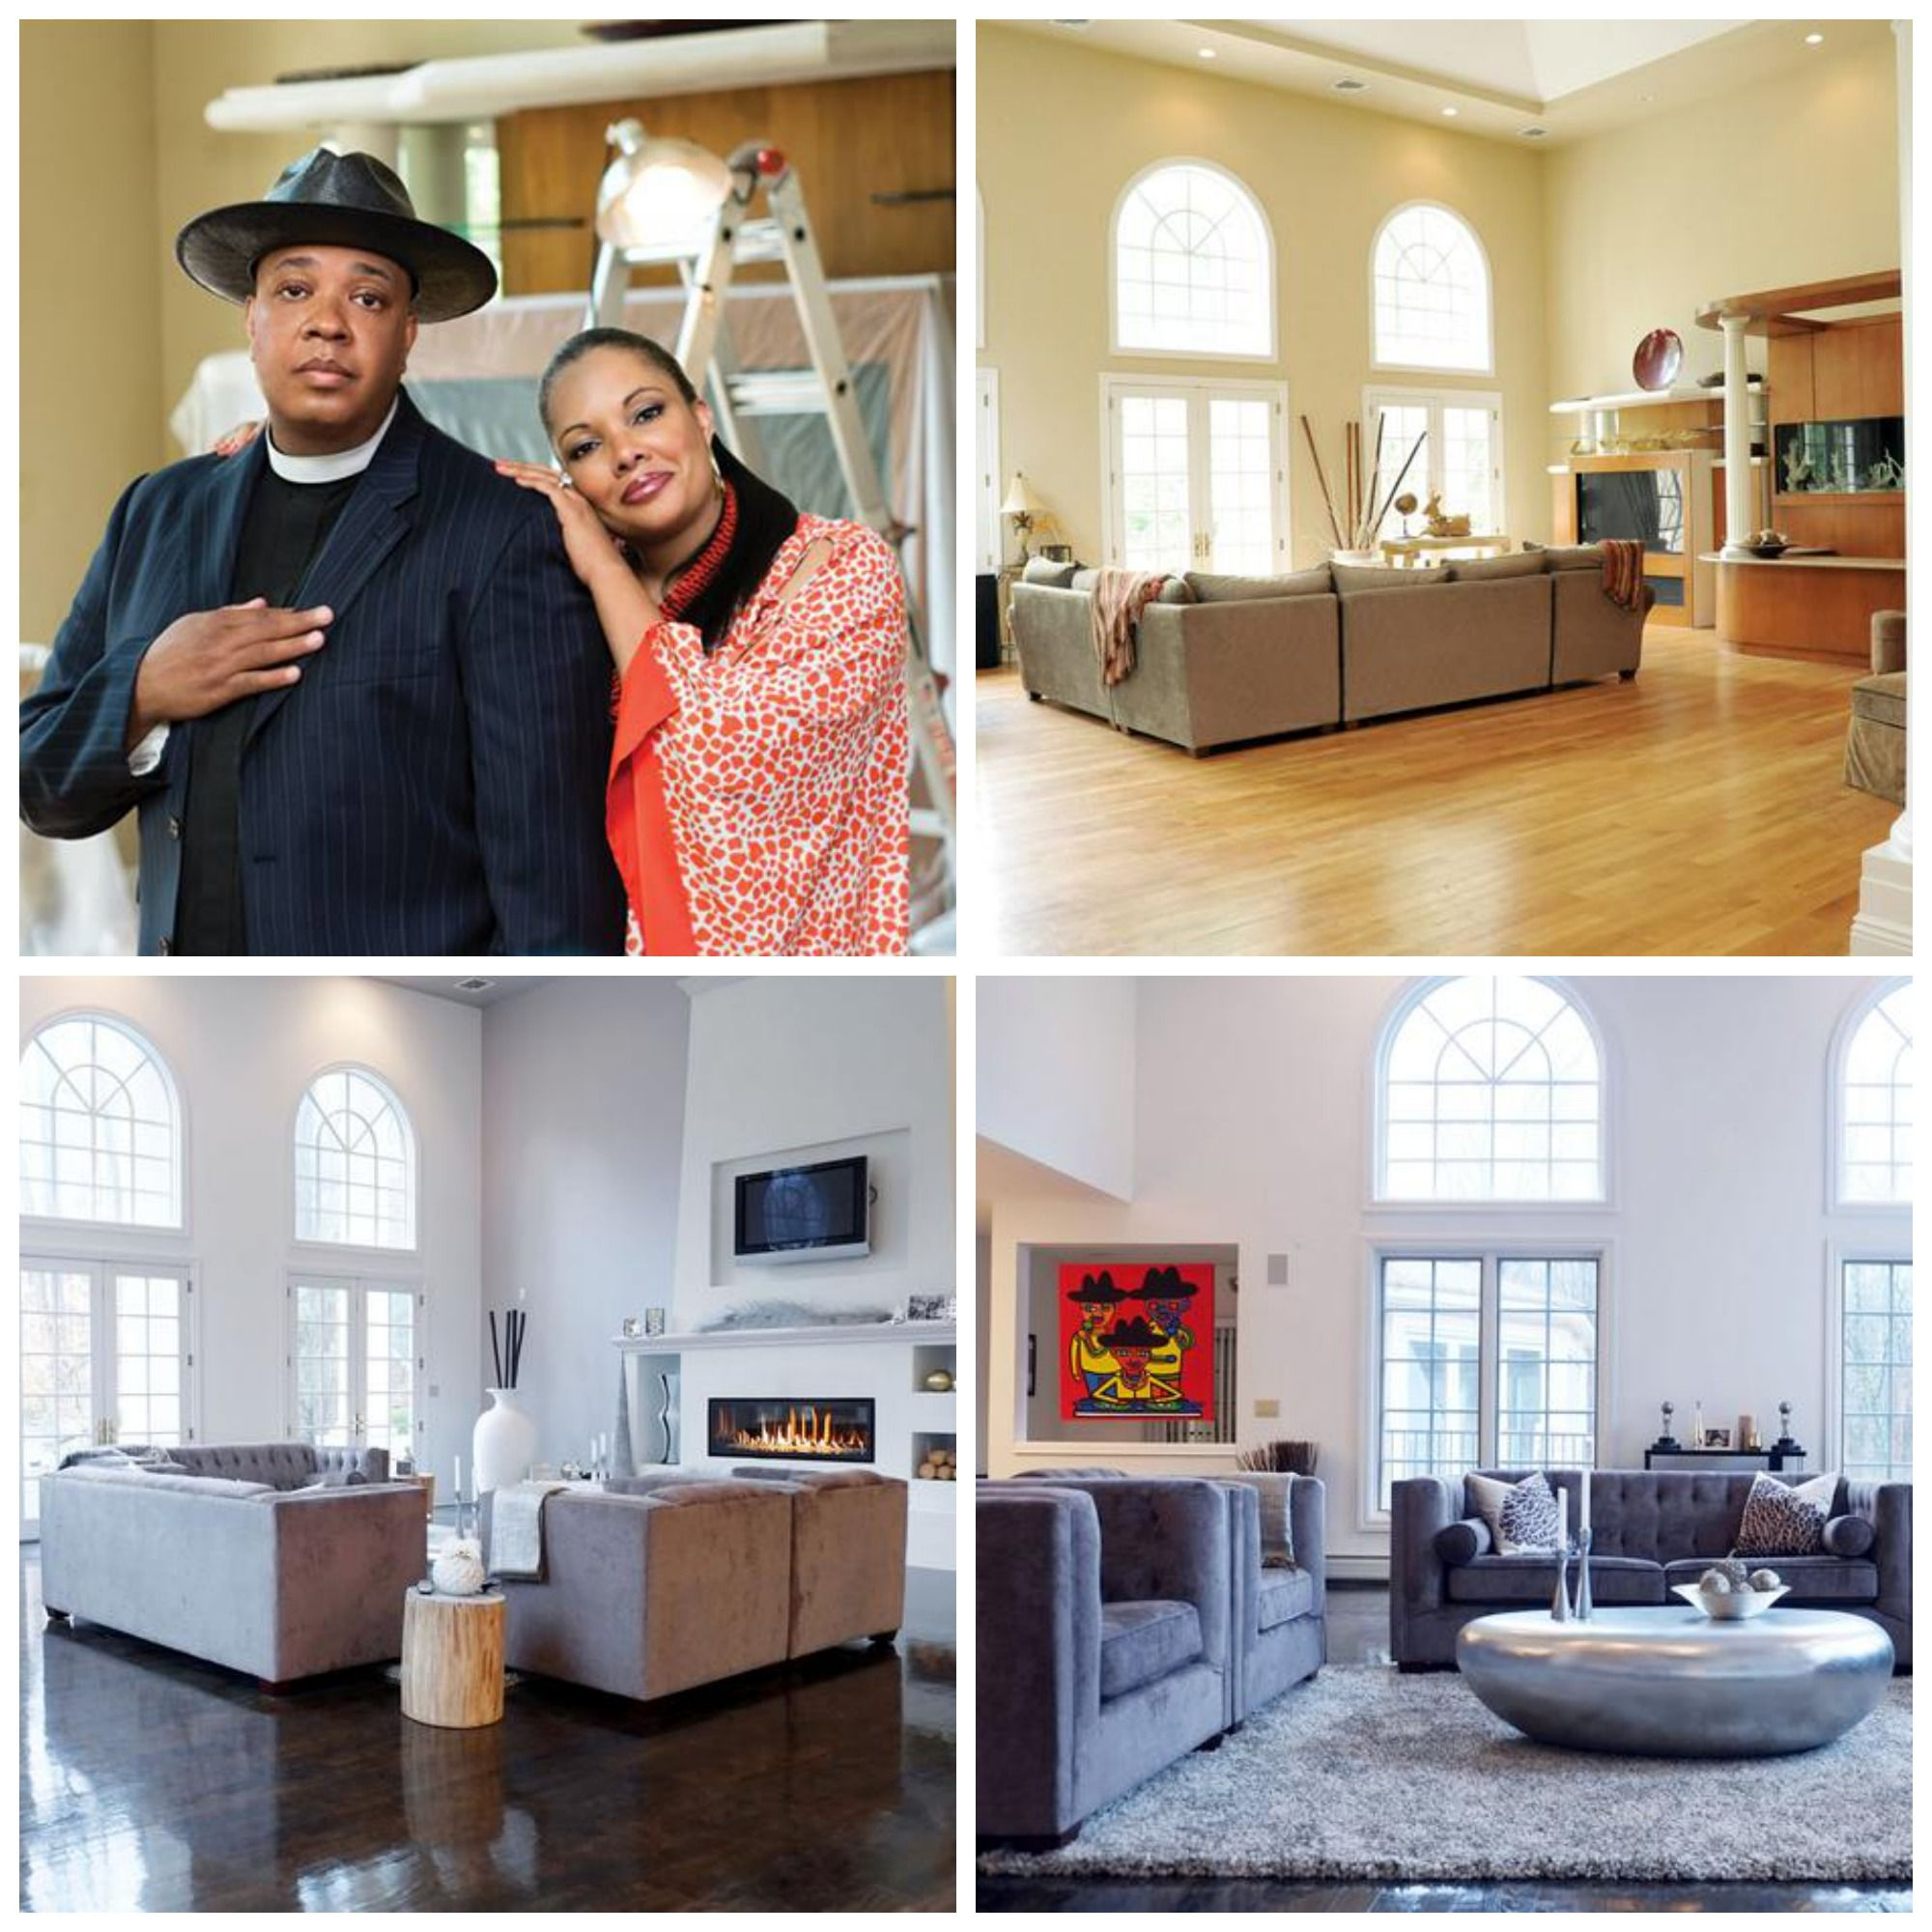 Browse before and after photos at Rev Run's Renovation >> http://www.diynetwork.com/tv-shows/rev-runs-renovation-a-great-room-conversion/pictures/index.html?soc=pinterest